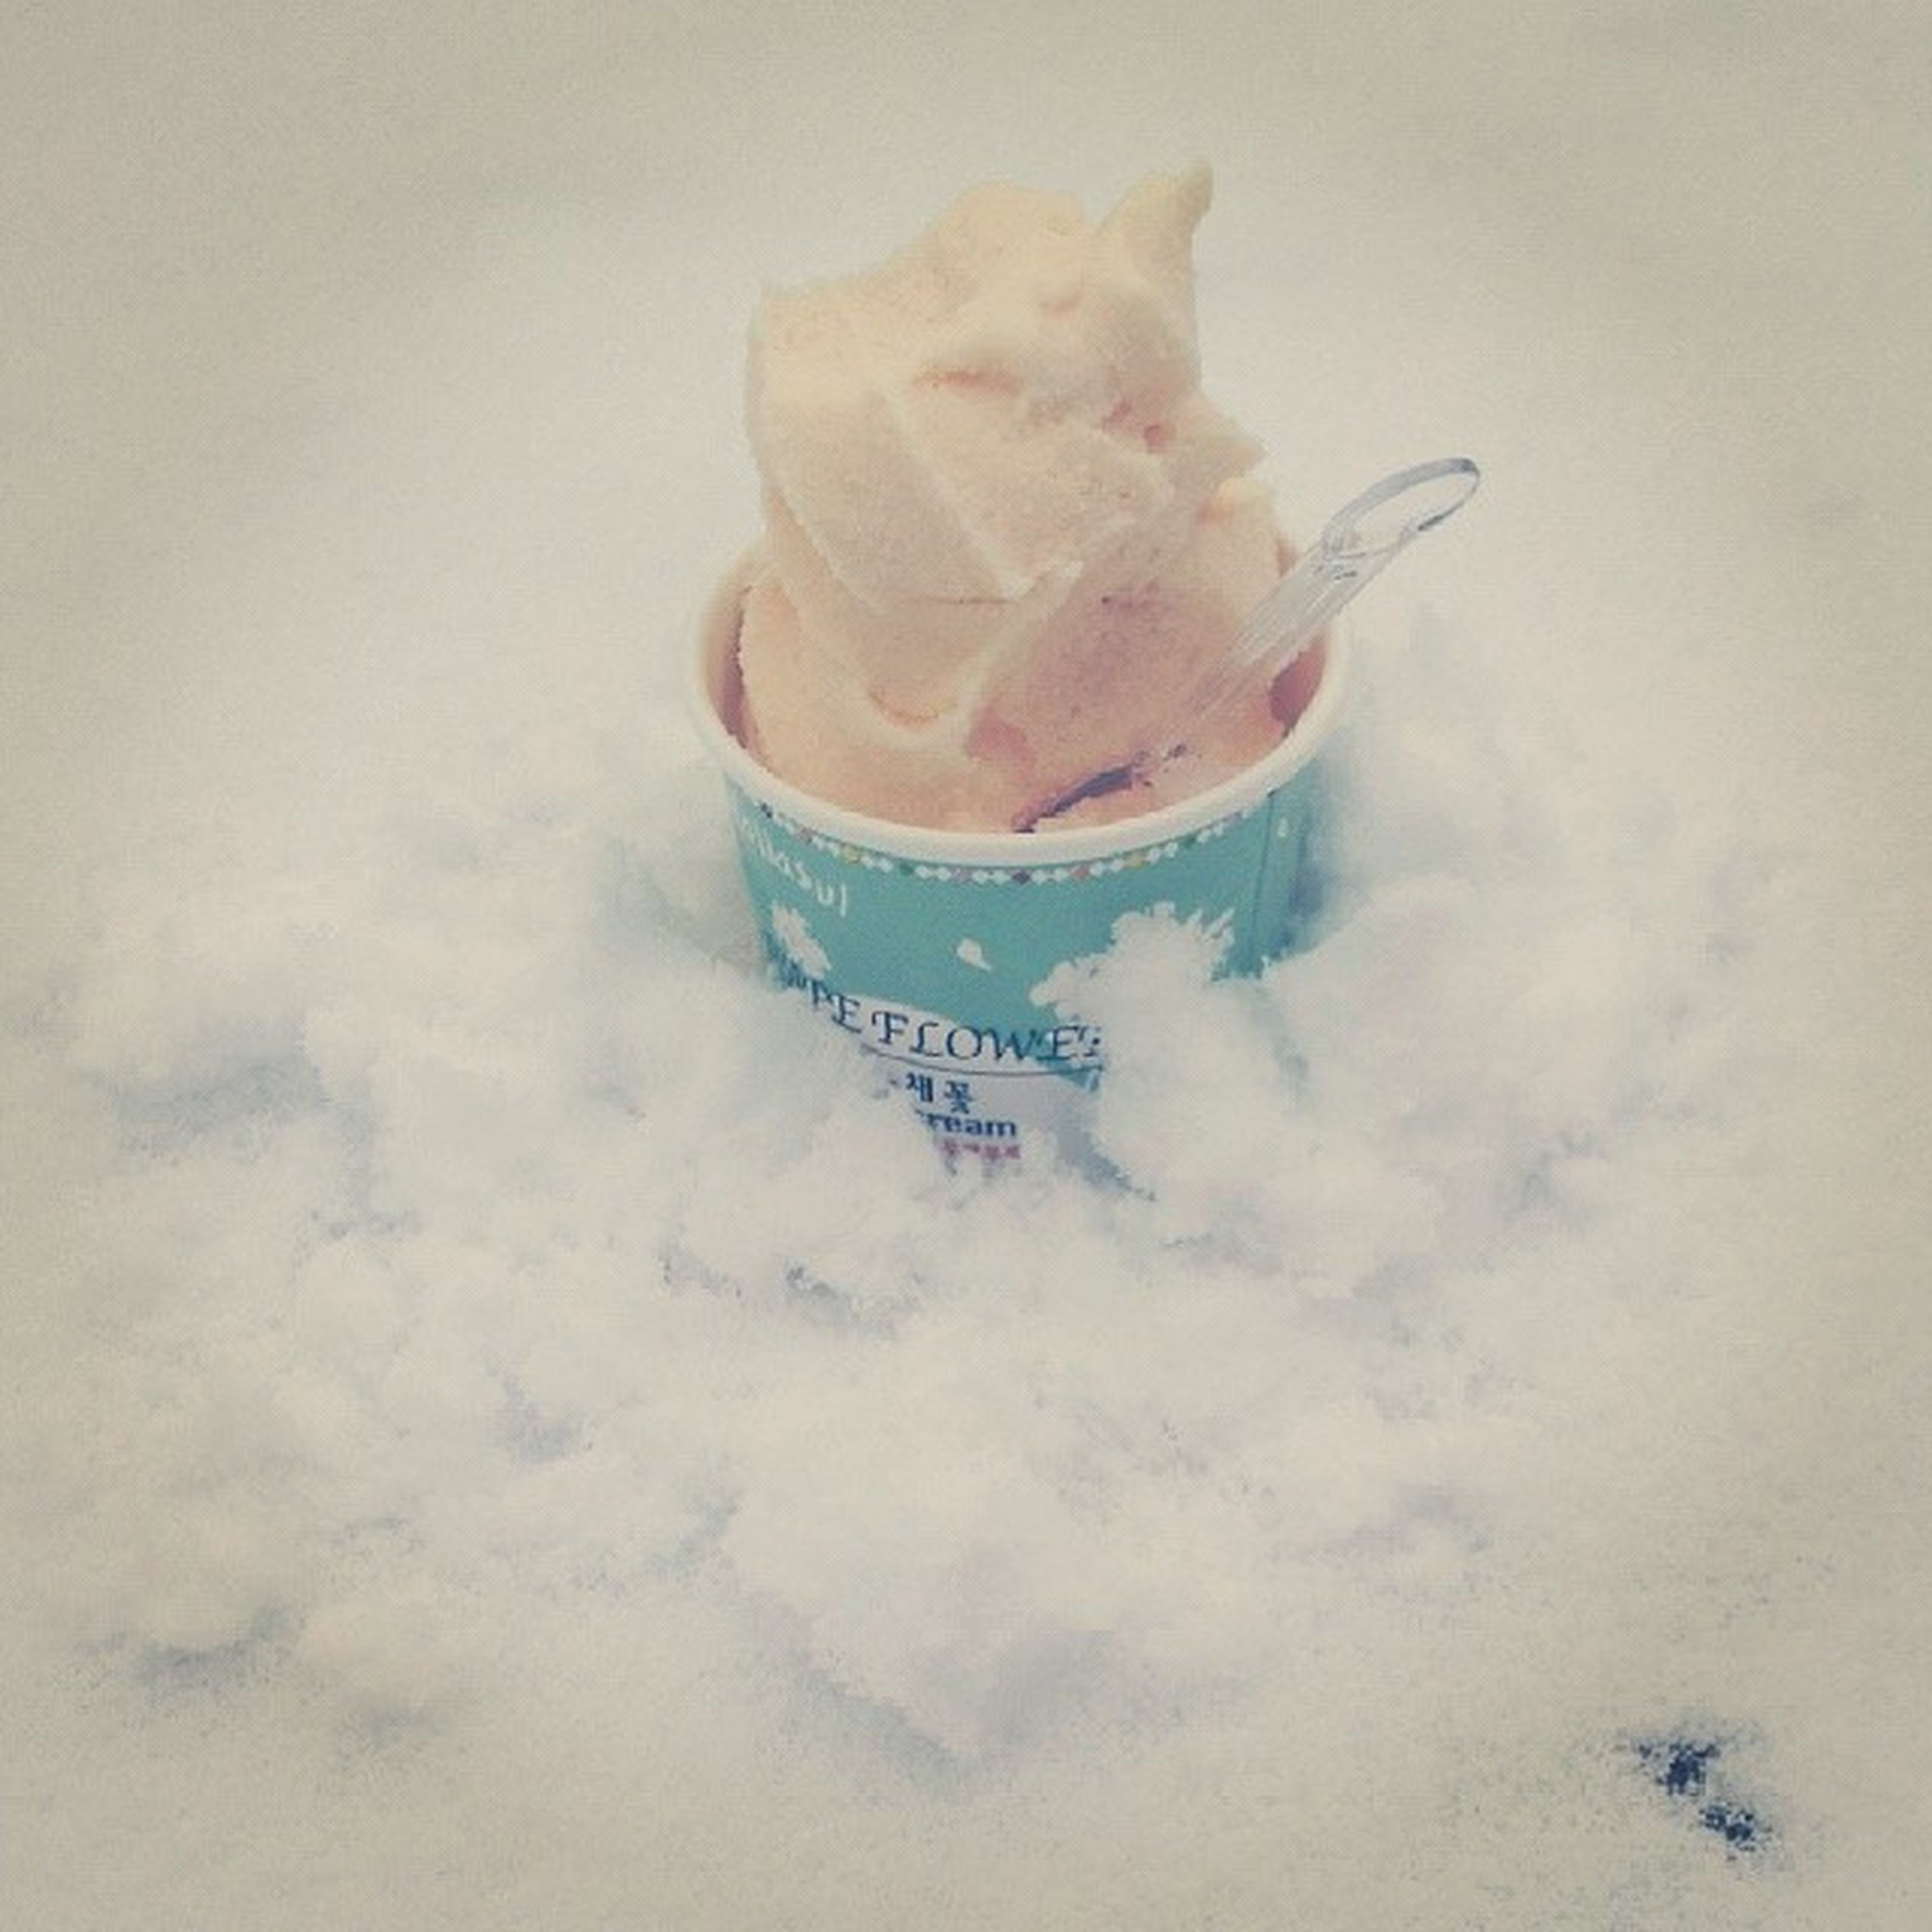 cold temperature, food and drink, food, snow, sweet food, winter, freshness, sky, no people, weather, white color, frozen, close-up, indulgence, unhealthy eating, day, still life, season, nature, dessert